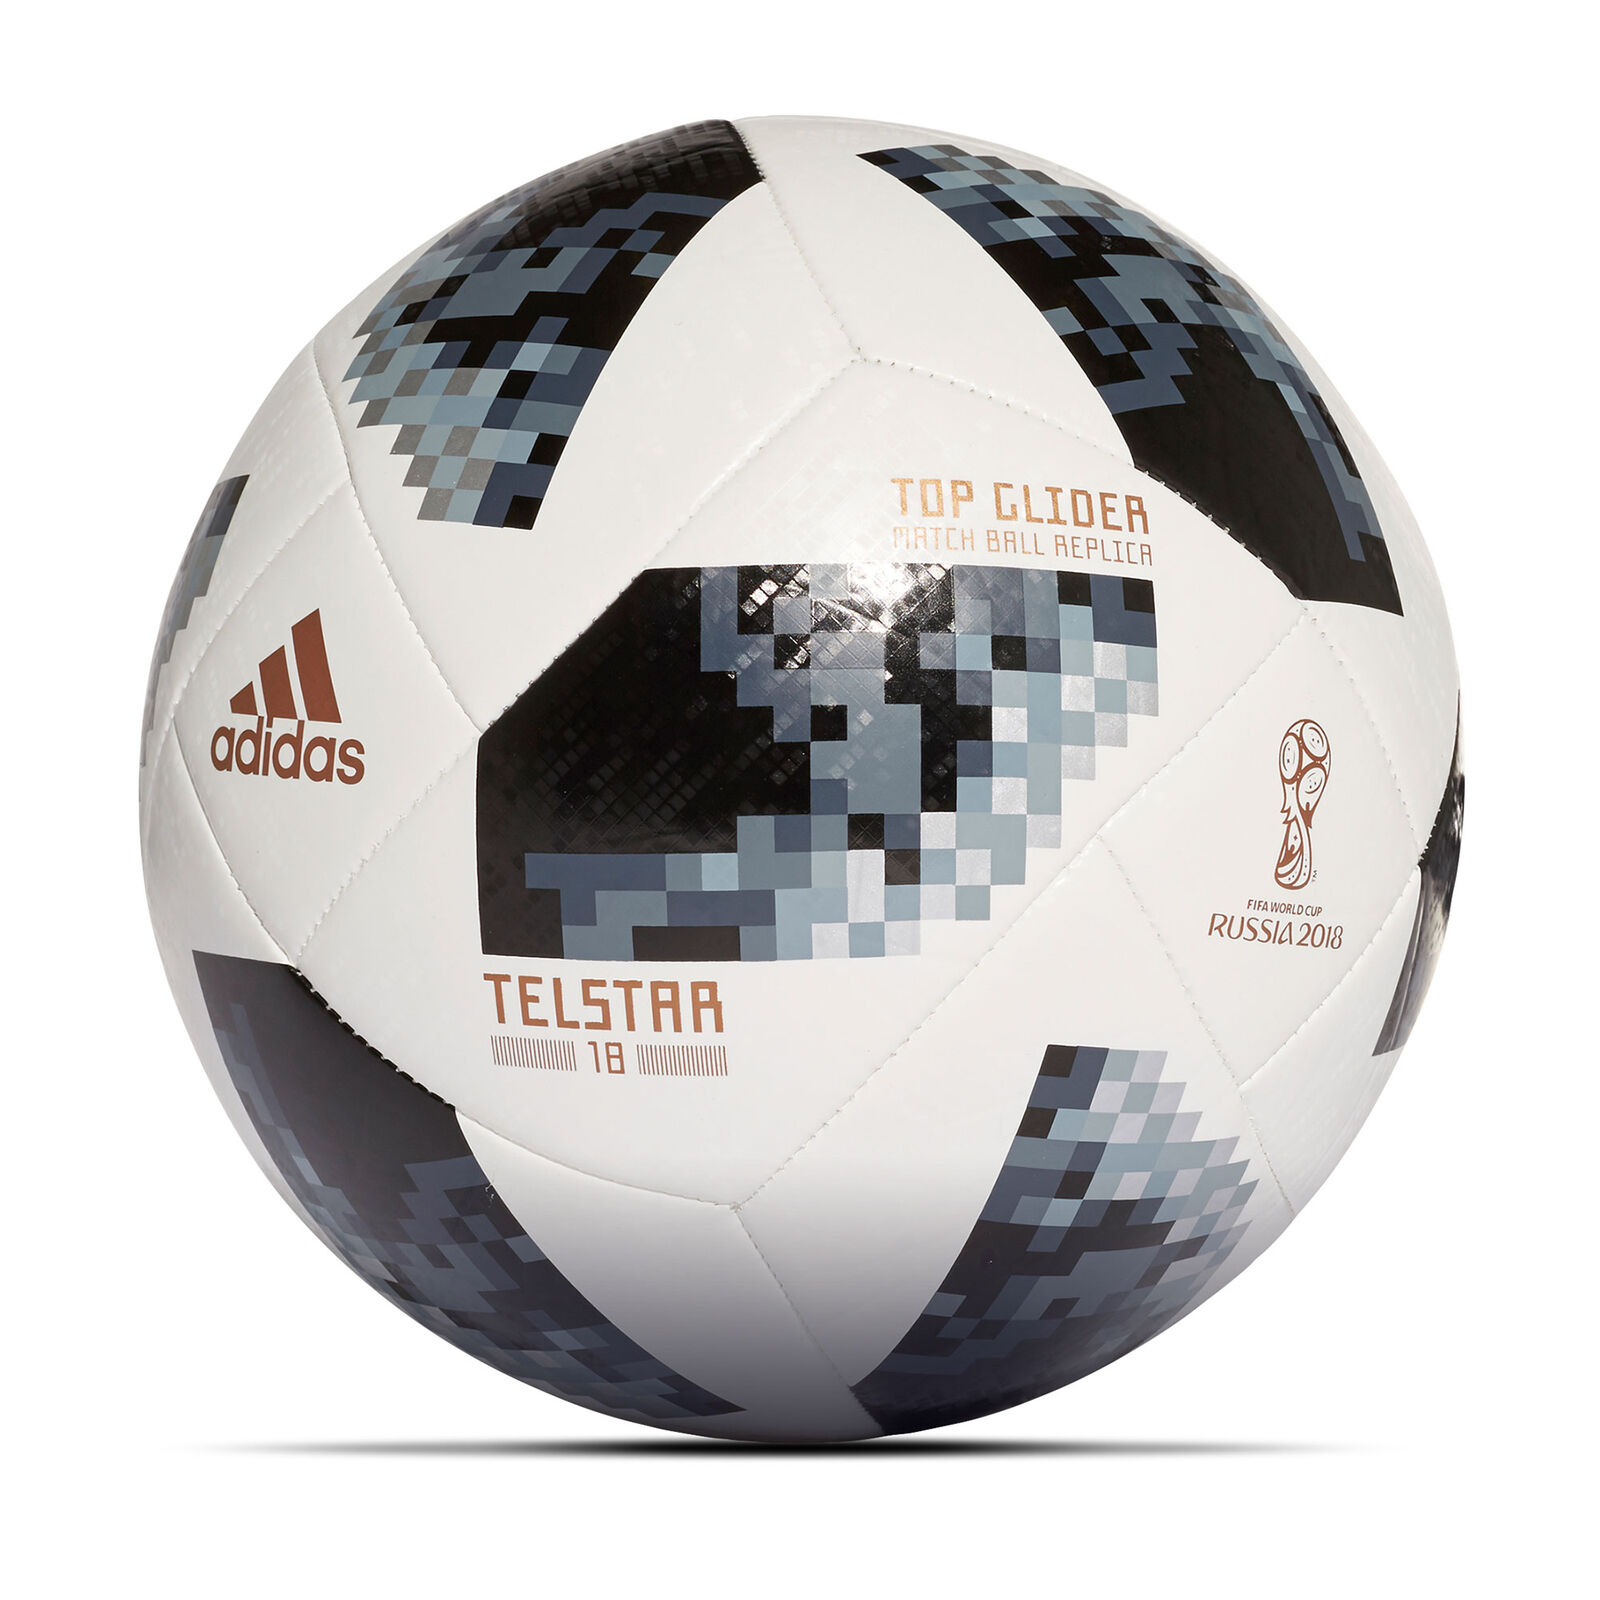 Camiseta adidas adidas World Cup 2018 Cup Telstar Top Telstar Glider Football blanco Ce8096 d05630c - allpoints.host